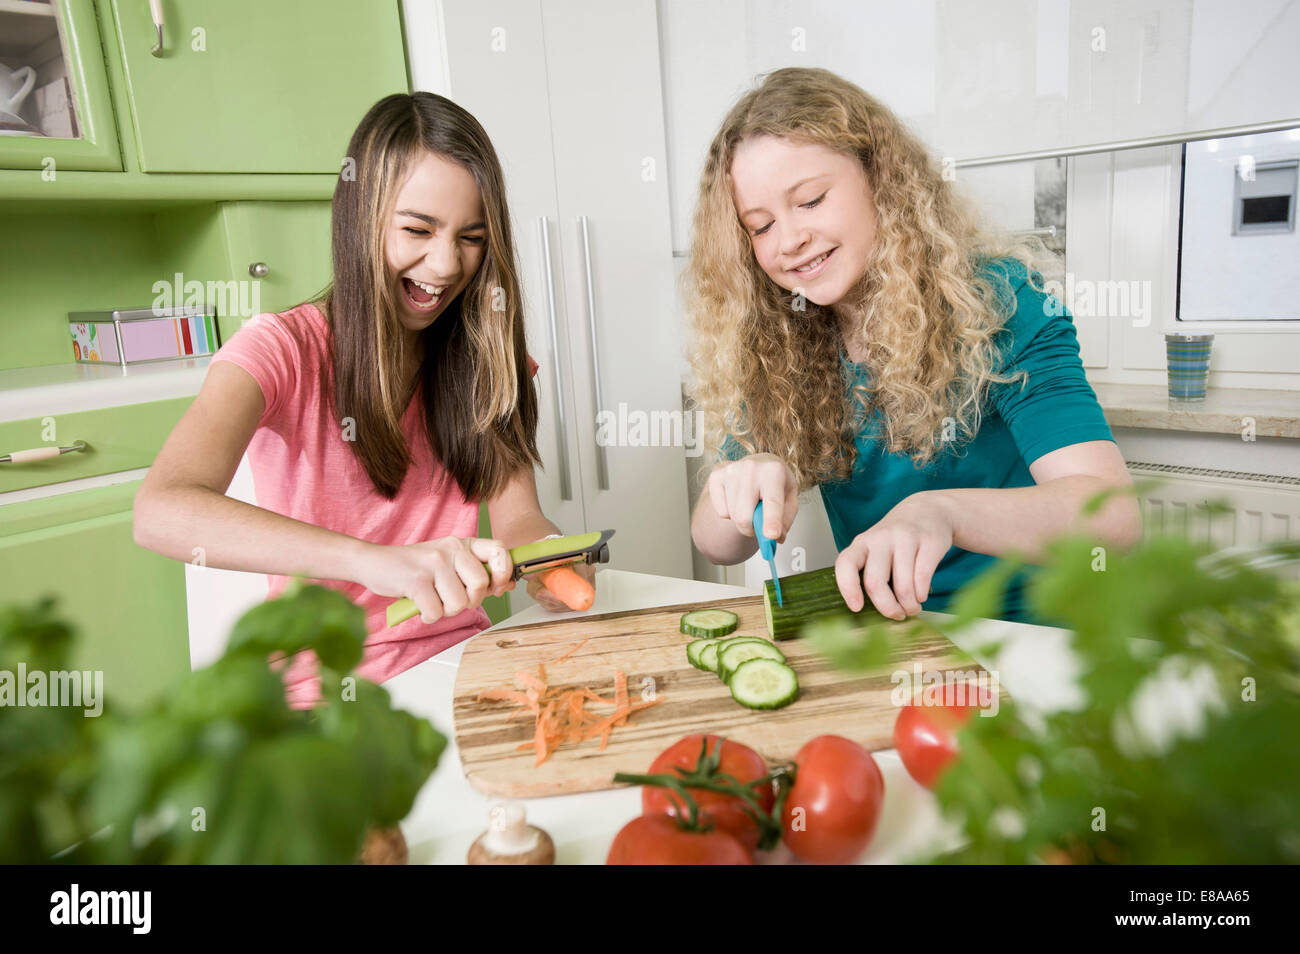 Girls in kitchen chopping vegetables - Stock Image